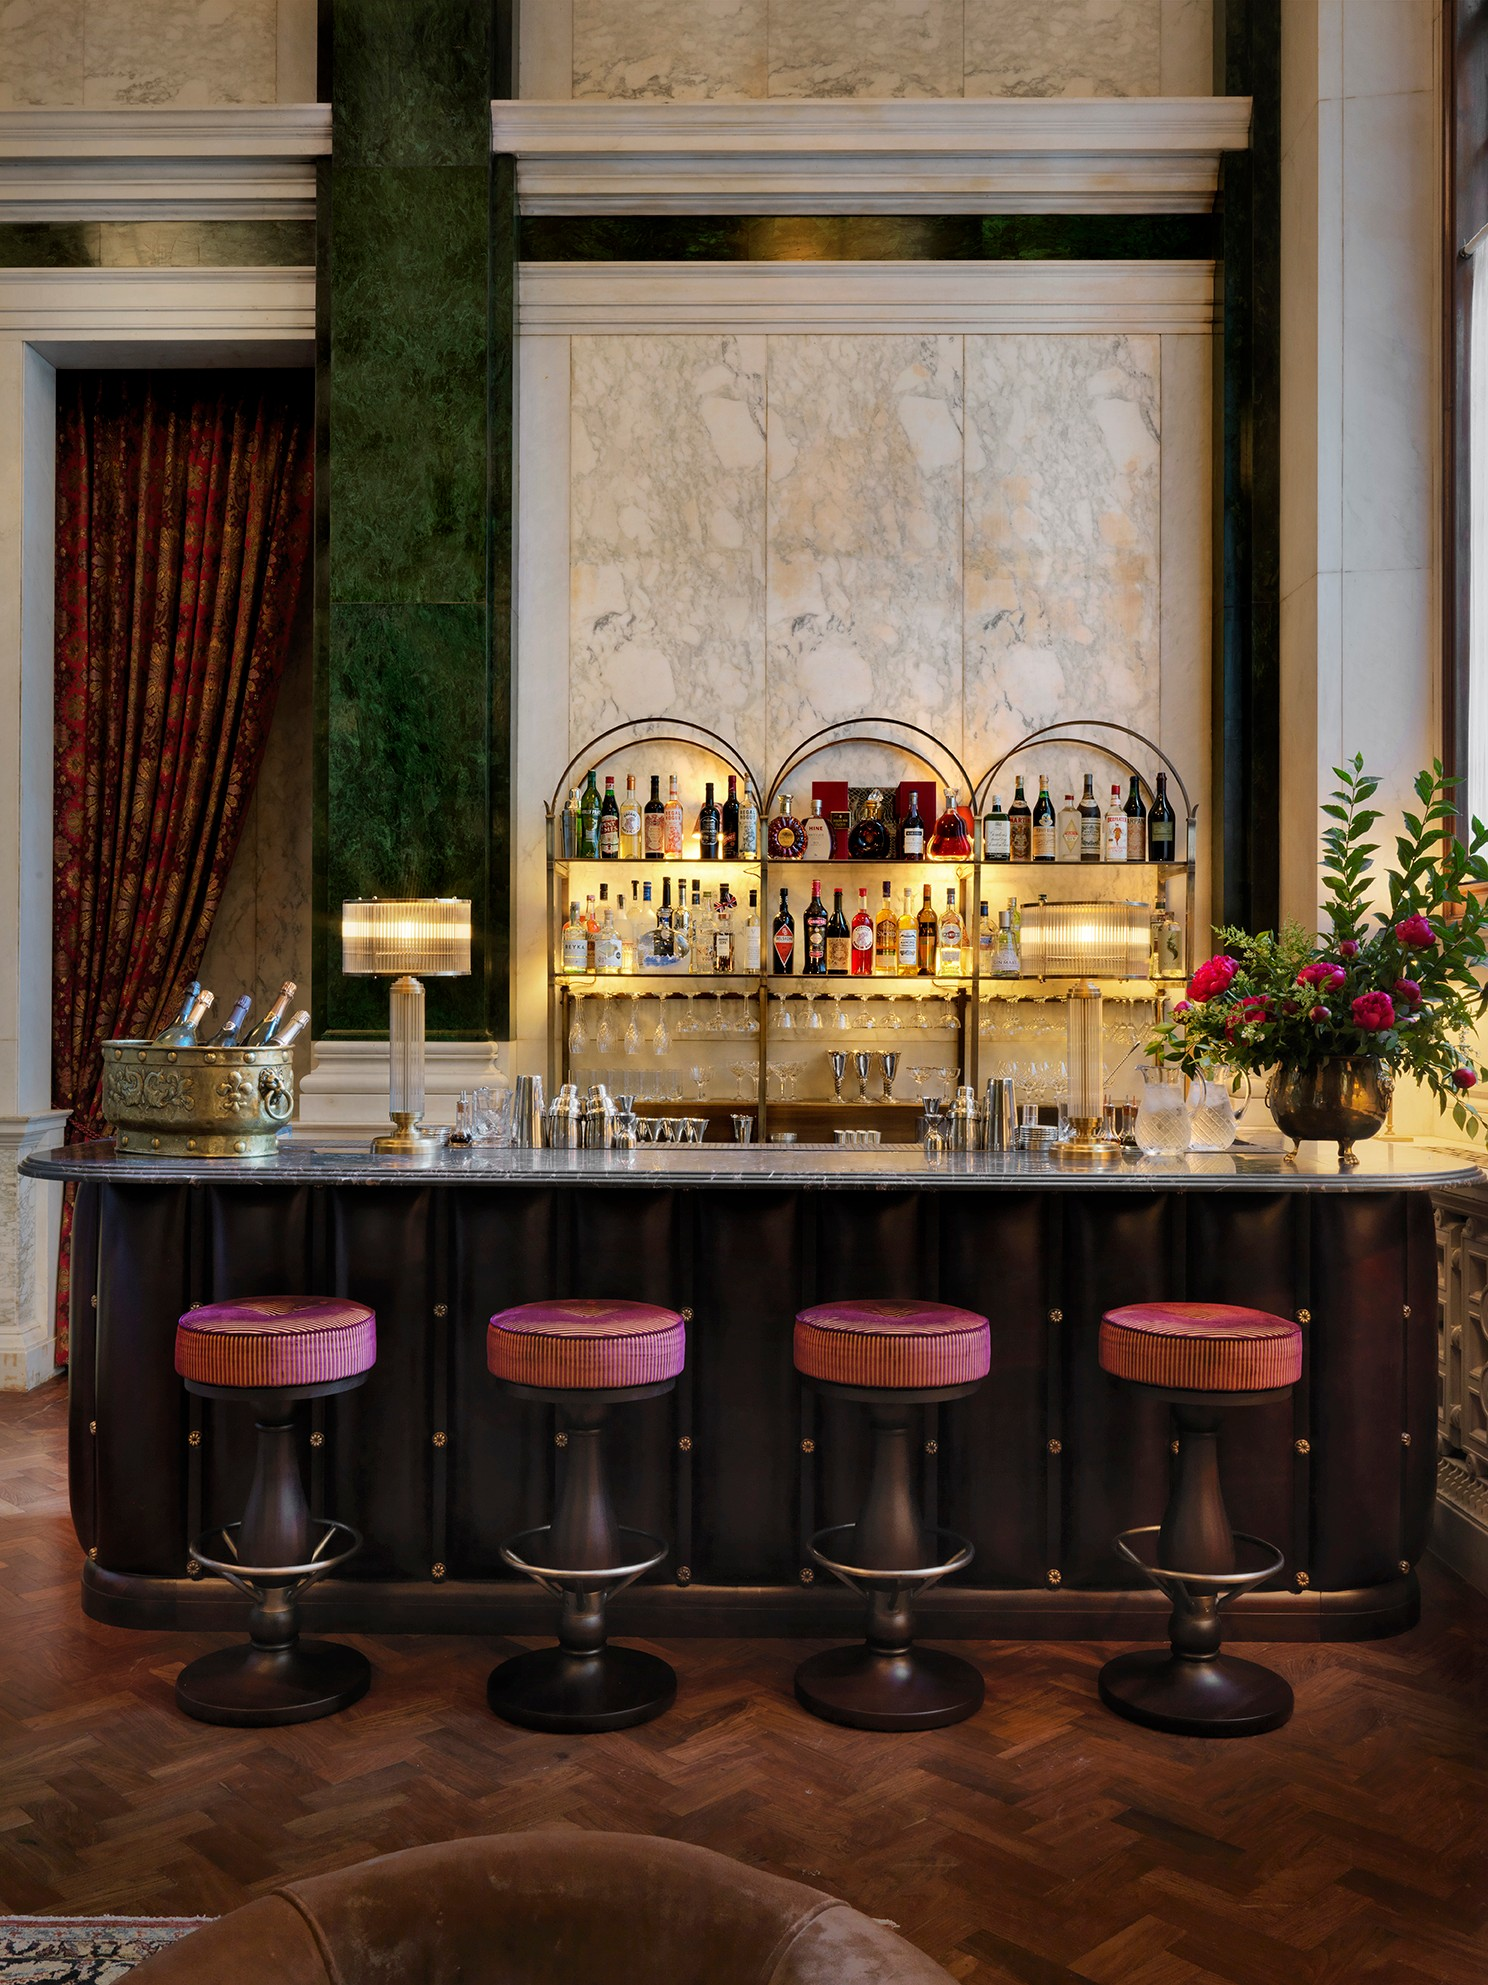 A long, dark bar with pink stools and white walls